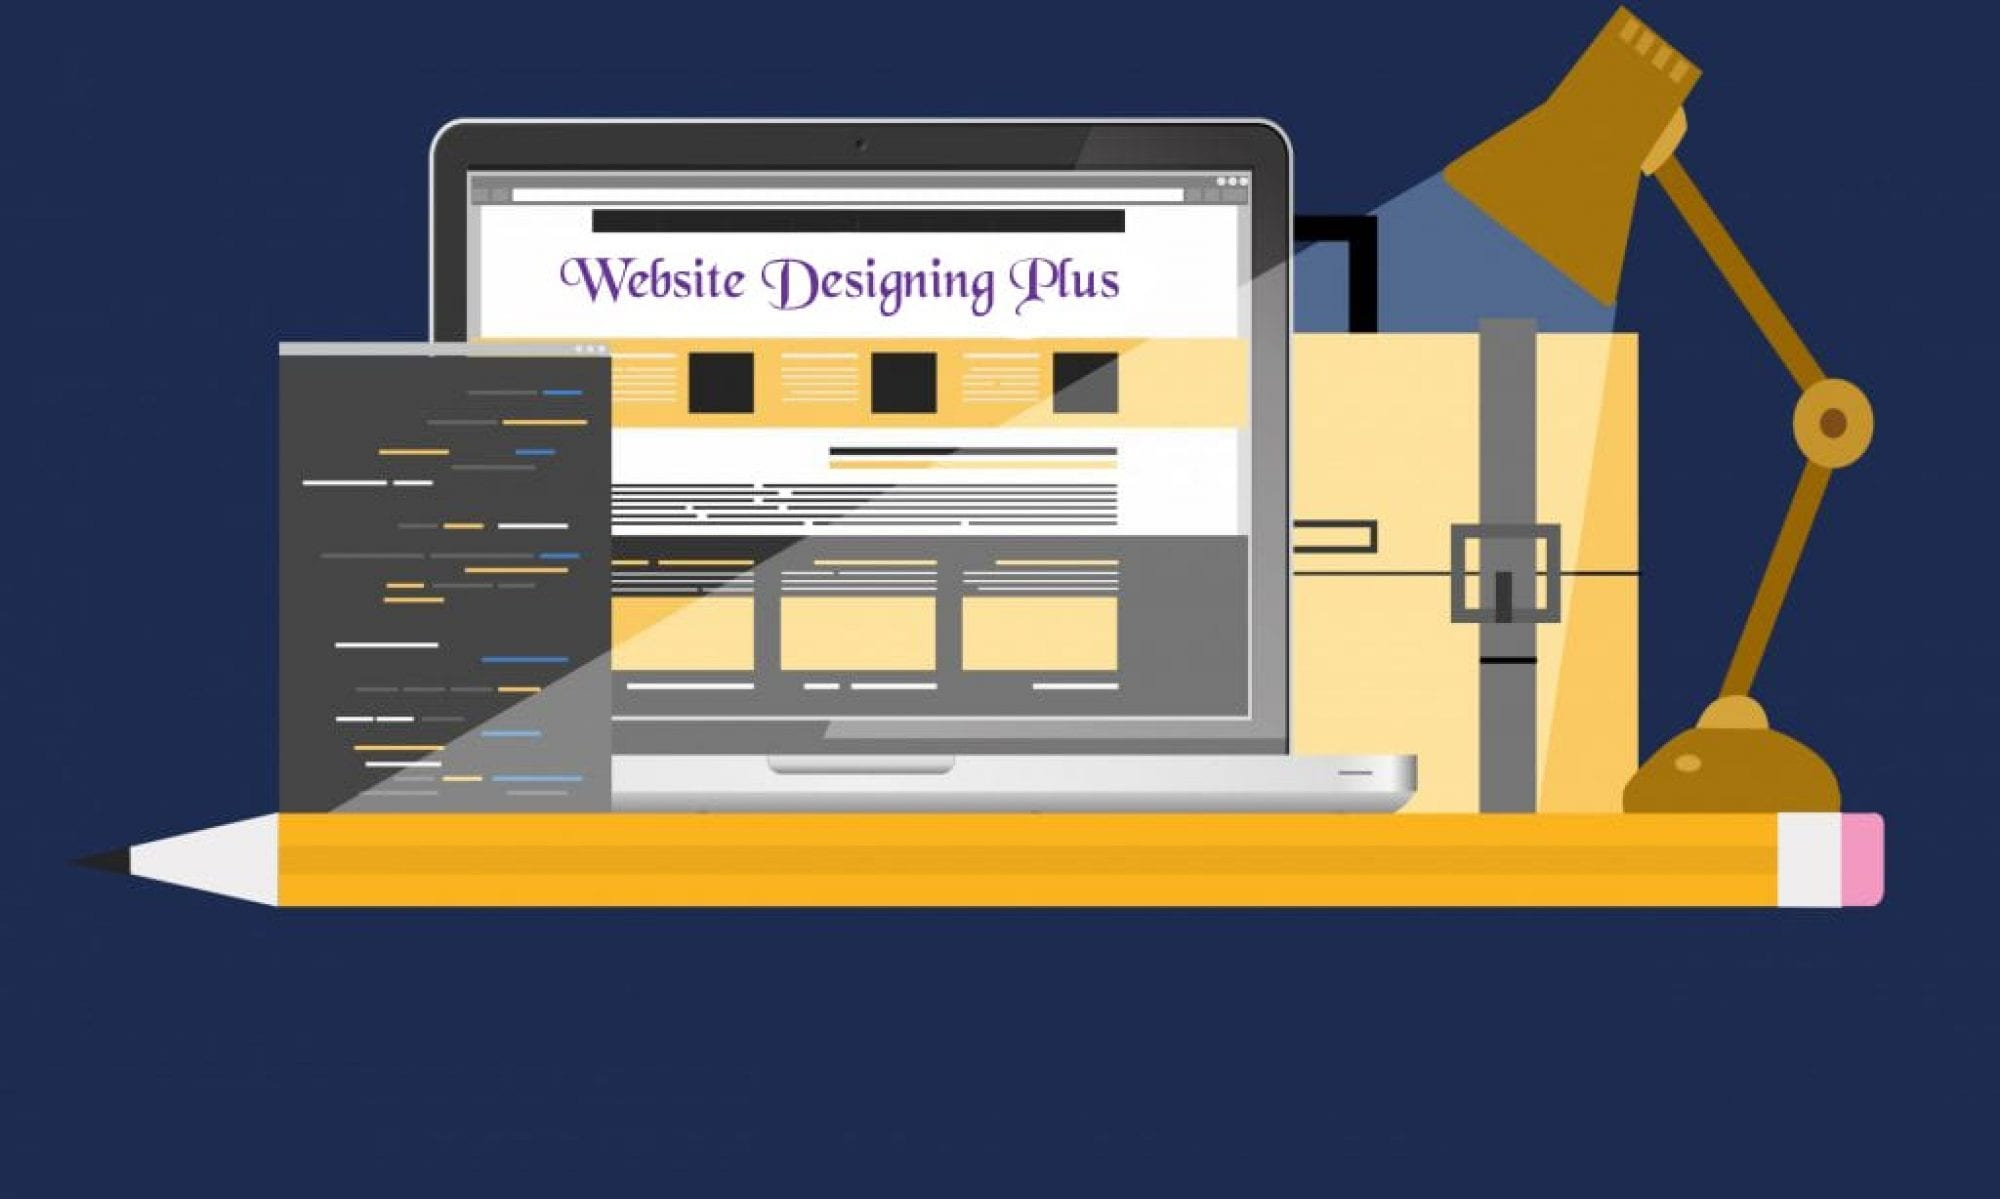 Website Designing Plus